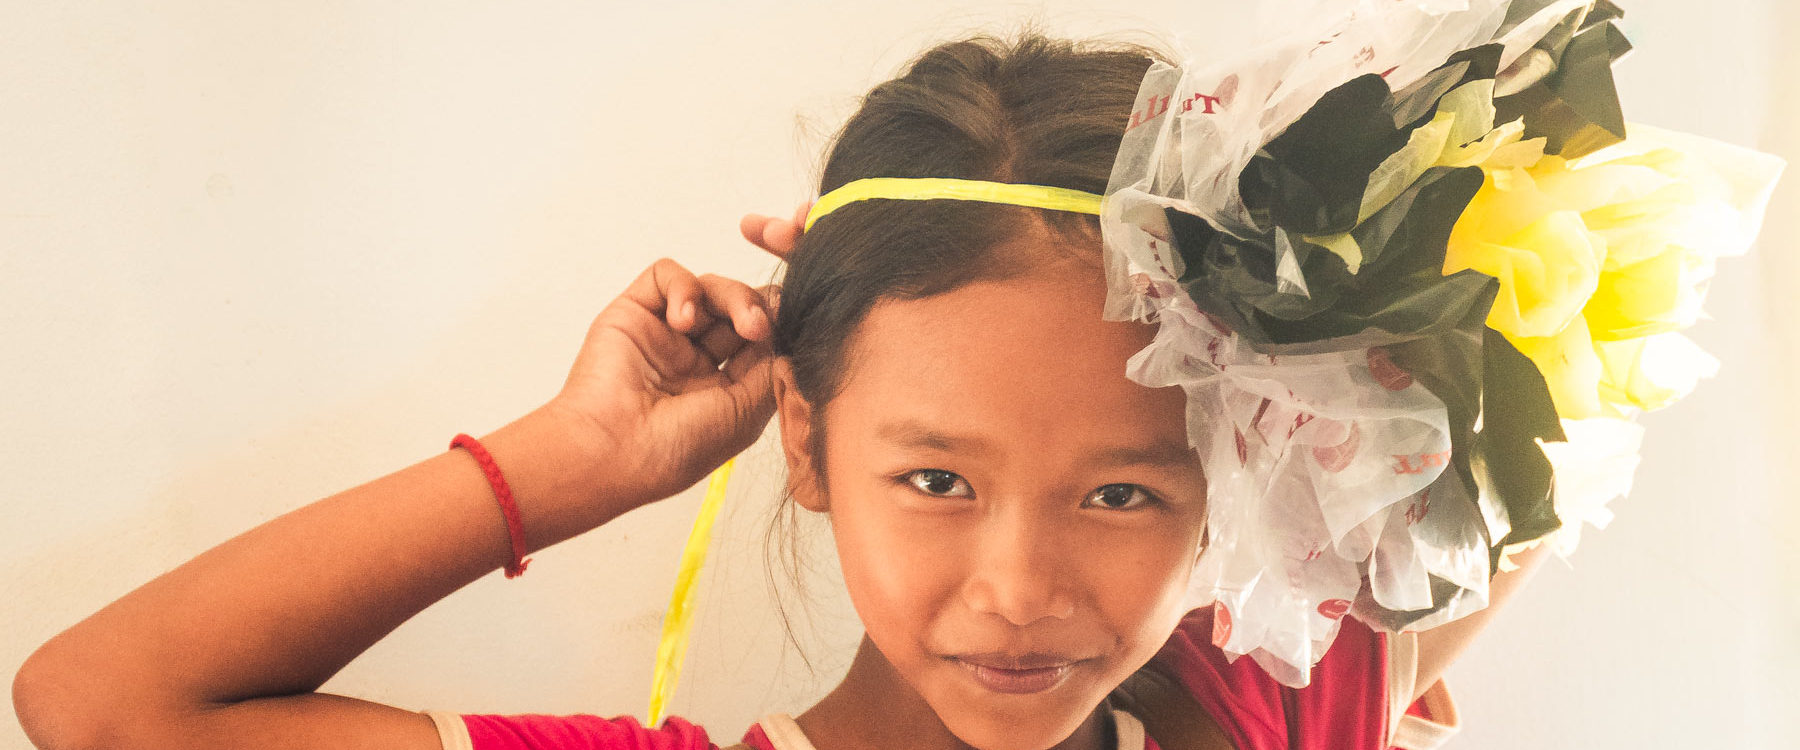 Happy kid is wearing a big flower made from plastic waste on her head and made during a craft course - fun filled ecological project in Phnom Penh, Cambodia